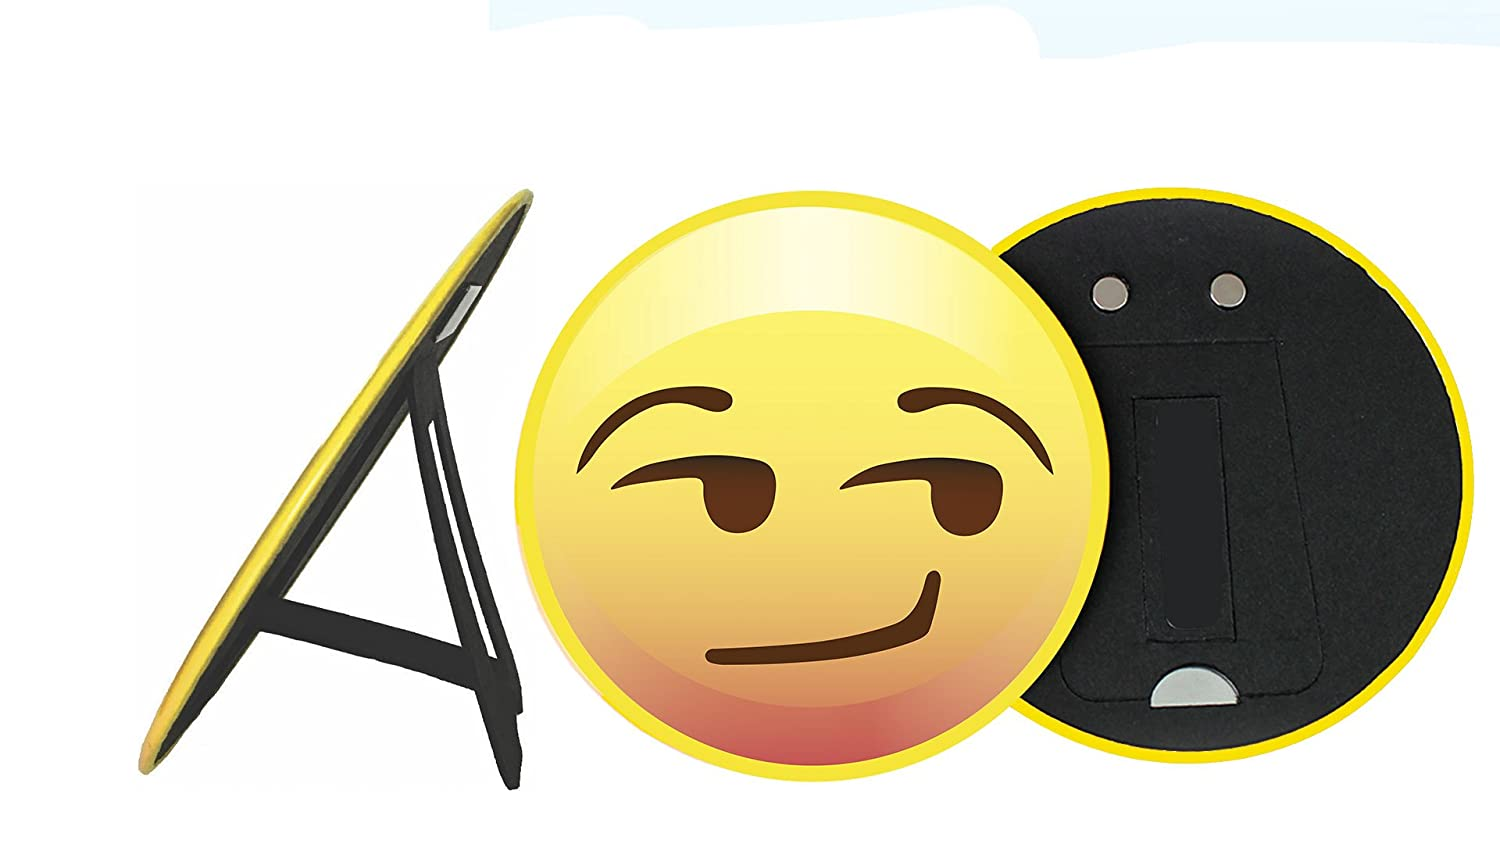 """School White Board Large 6/"""" Smirk Face with Easel Back for Table Top Party D/écor Fridge Emoji Magnet or Place on Refrigerator Kids Bedroom Art Office Gift for Women /& Men Made in USA"""